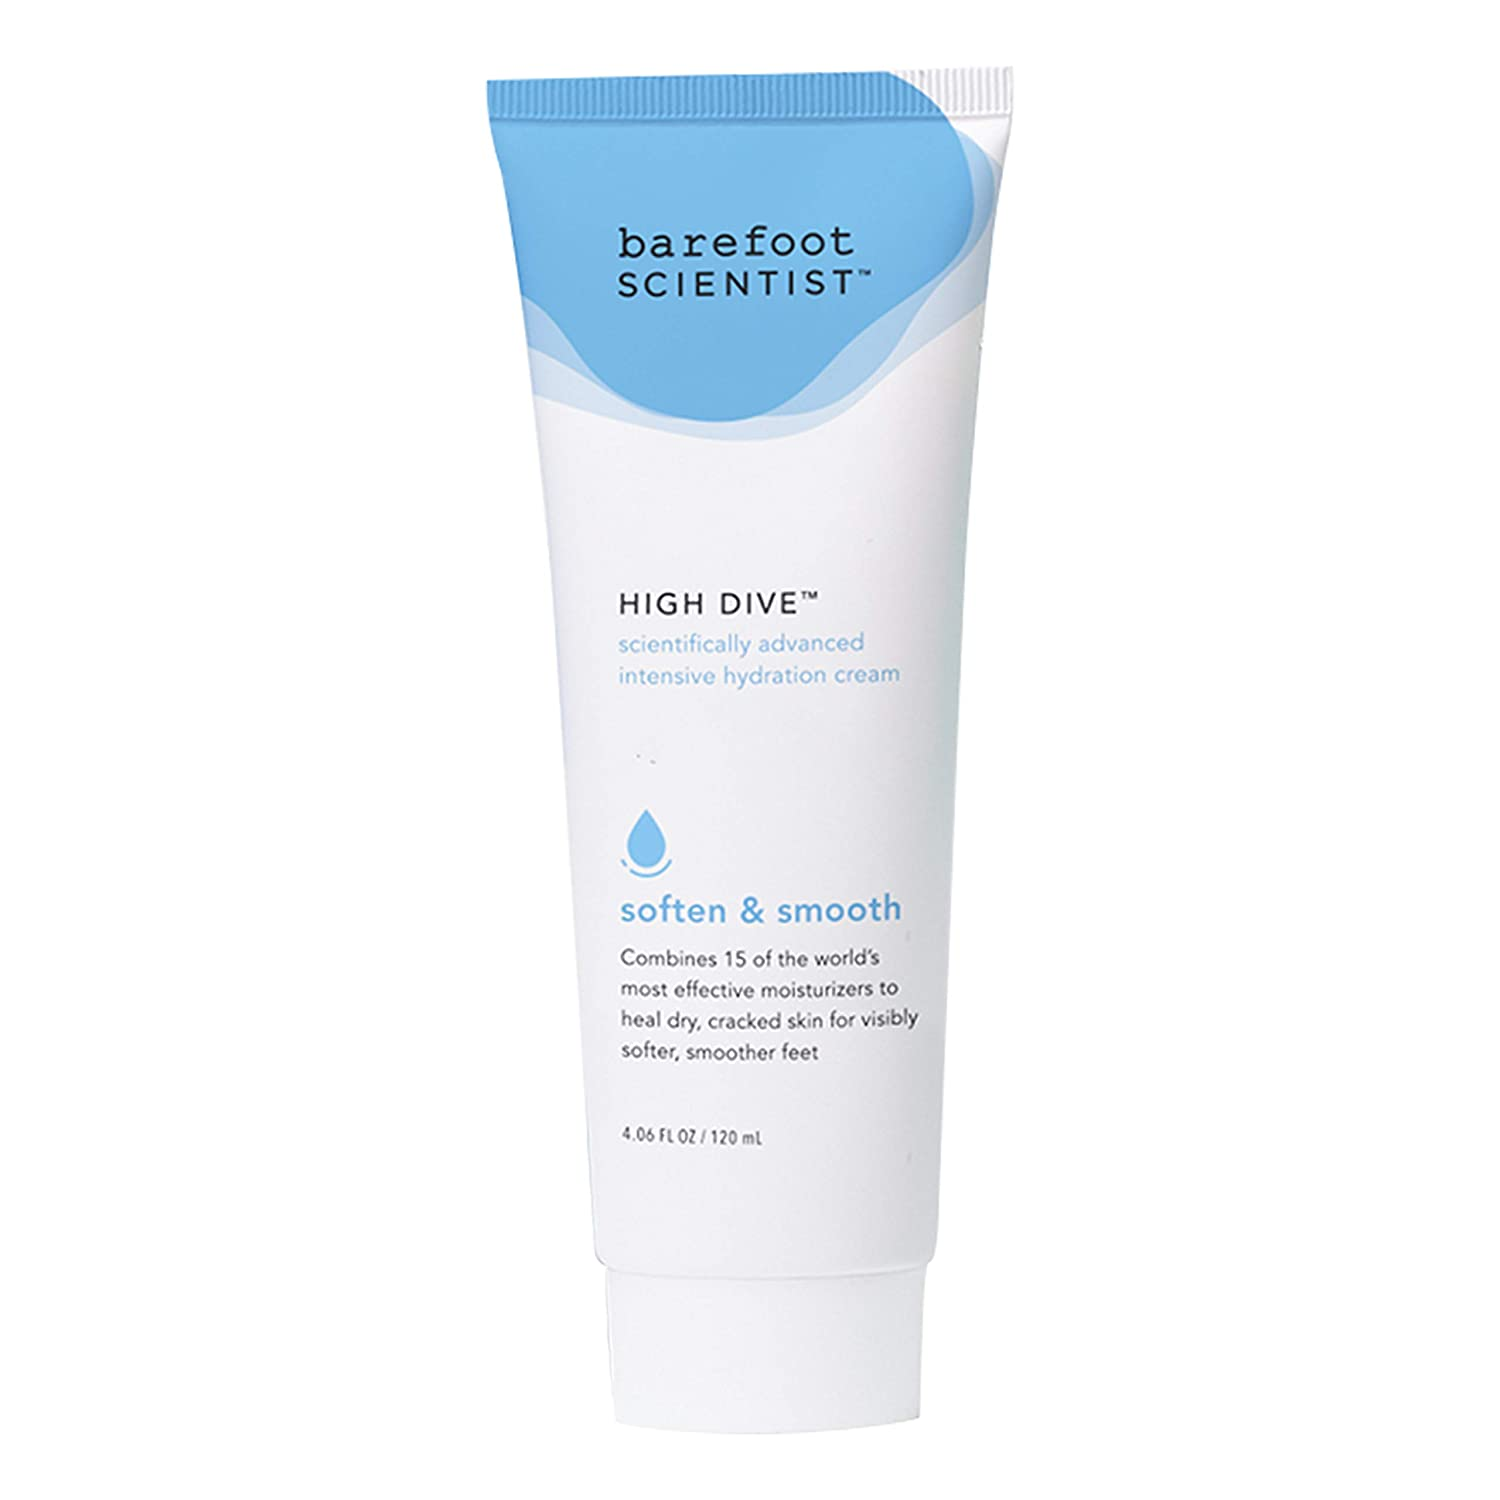 Barefoot Scientist High Dive Intensive Hydration Foot Therapy Cream, Specialized Moisture for Dry Feet and Cracked Heels